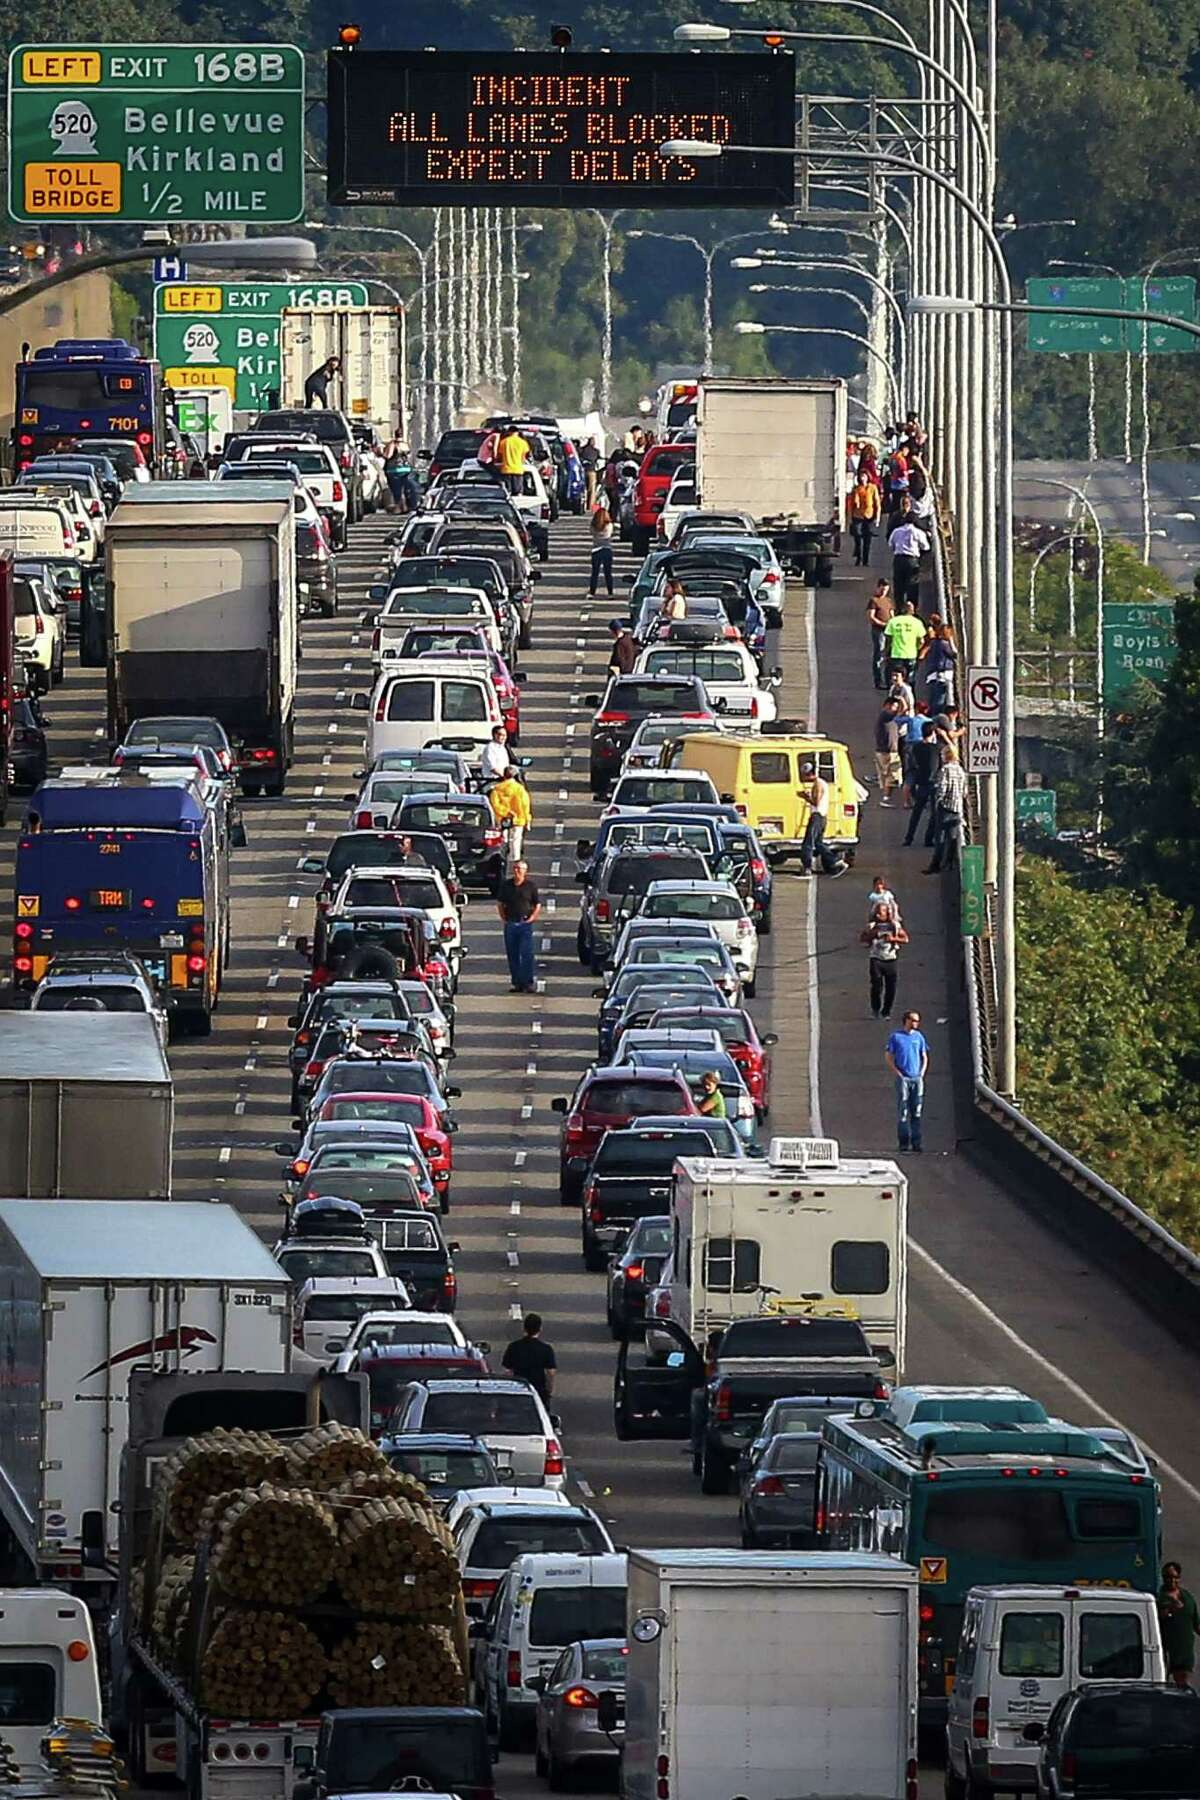 Traffic on the Interstate 5 Ship Canal Bridge is stopped and motorists stand on the bridge deck as traffic on the main Seattle thoroughfare comes to a standstill for the motorcade of President Barack Obama. Obama was in town to make a pair of fundraiser stops on Tuesday, July 22, 2014.